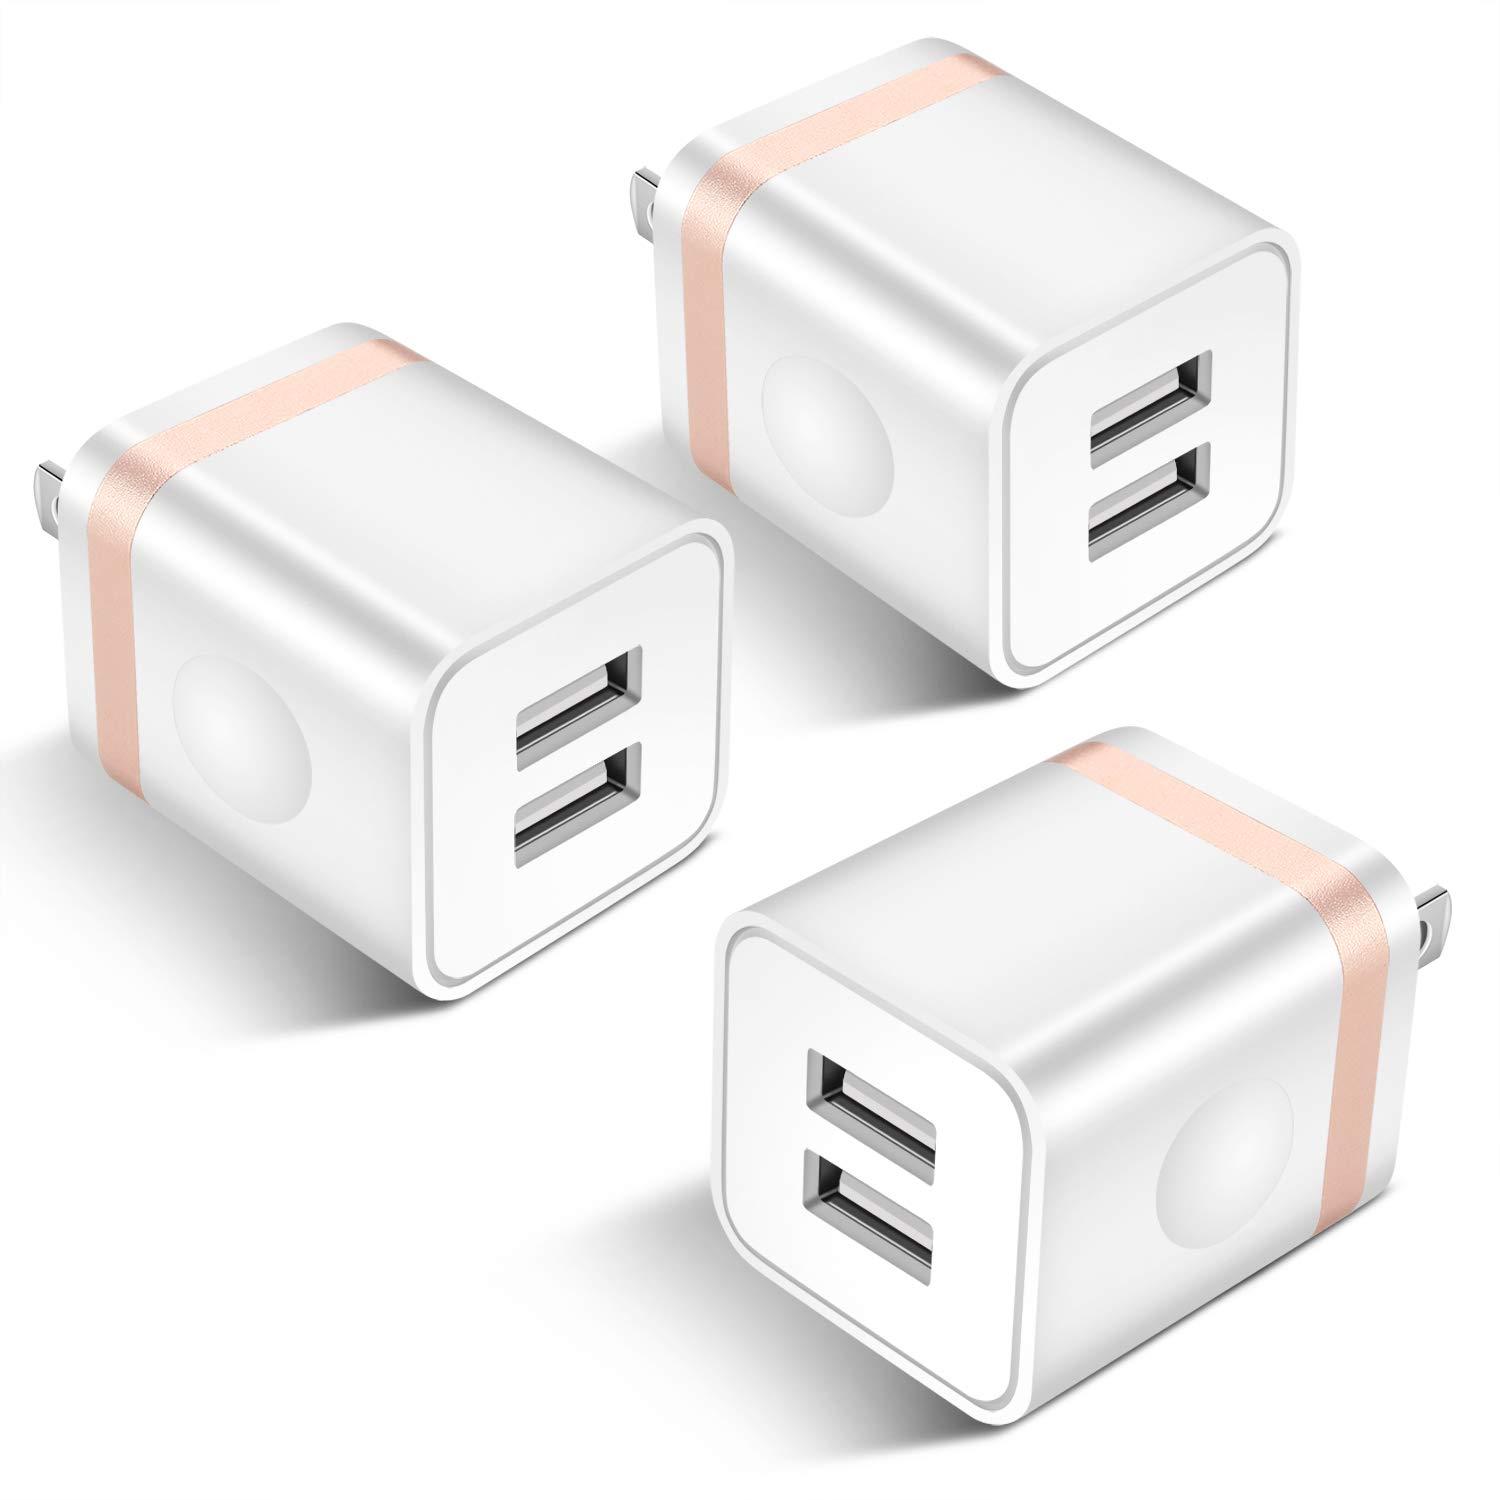 STELECH USB Wall Charger, 3-Pack 2.1A Dual Port USB Power Adapter Wall Charger Plug Charging Block Cube Compatible with Phone Xs Max/Xs/XR/X/8/7/6 Plus/5S/4S, Samsung, LG, Kindle, Android Phone -White by STELECH